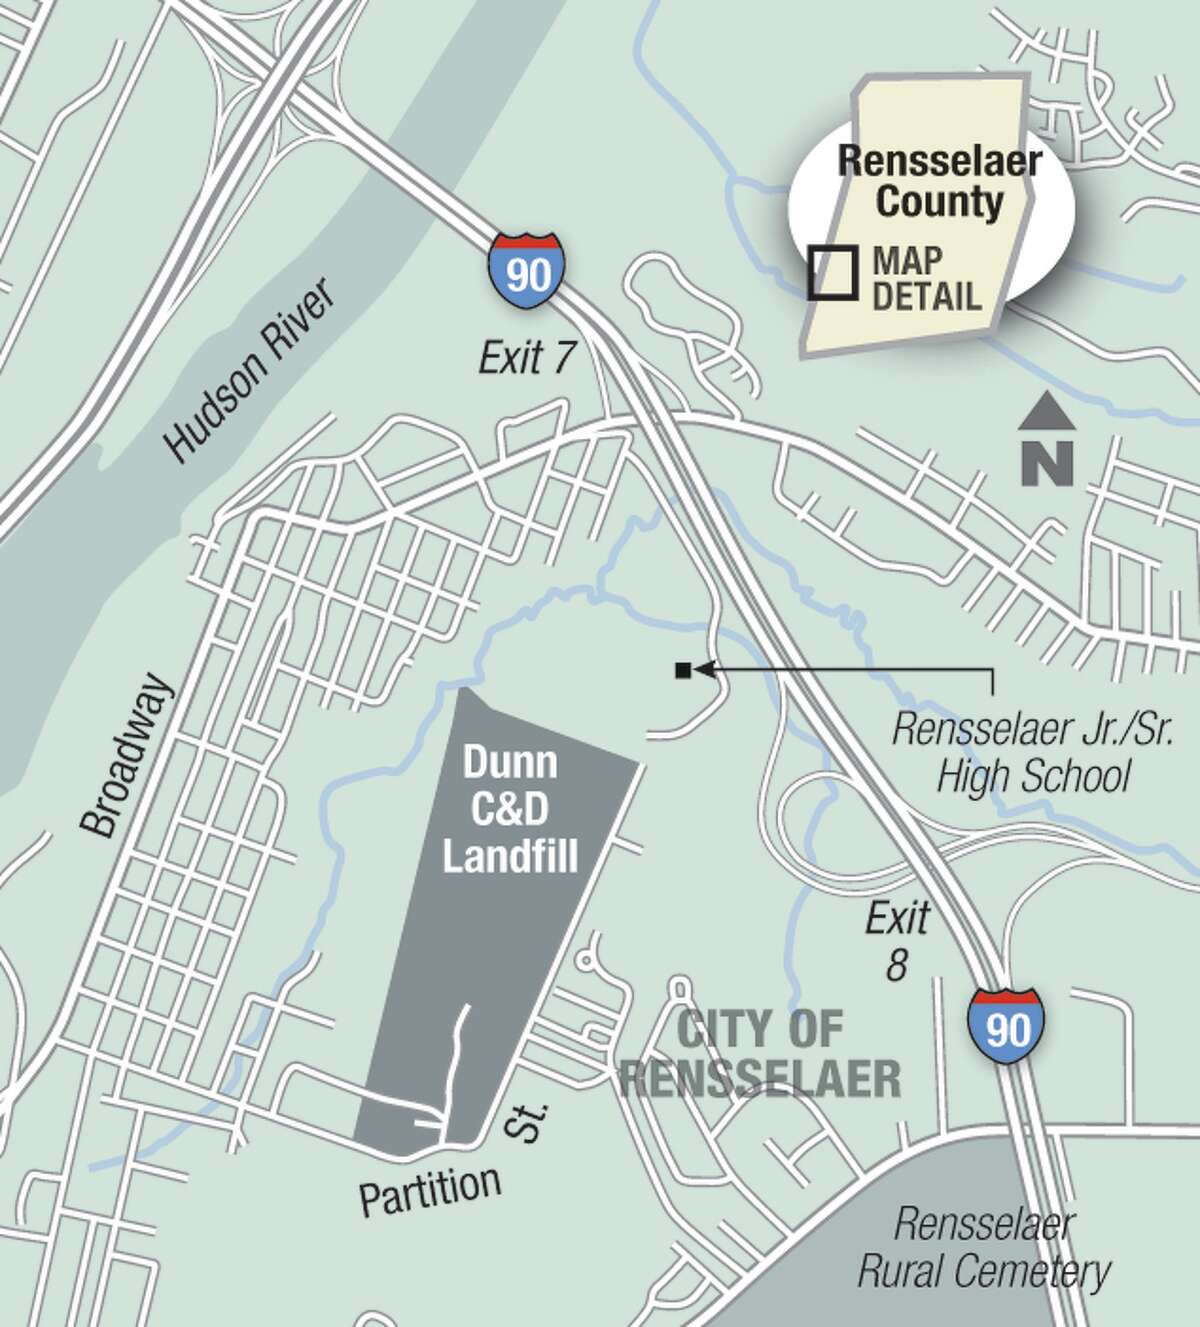 Opponents of the S.A. Dunn landfill in Rensselaer will be attending Wednesday's meeting of the city school board to raise their concerns. The landfill is located next to the junior-senior high school.